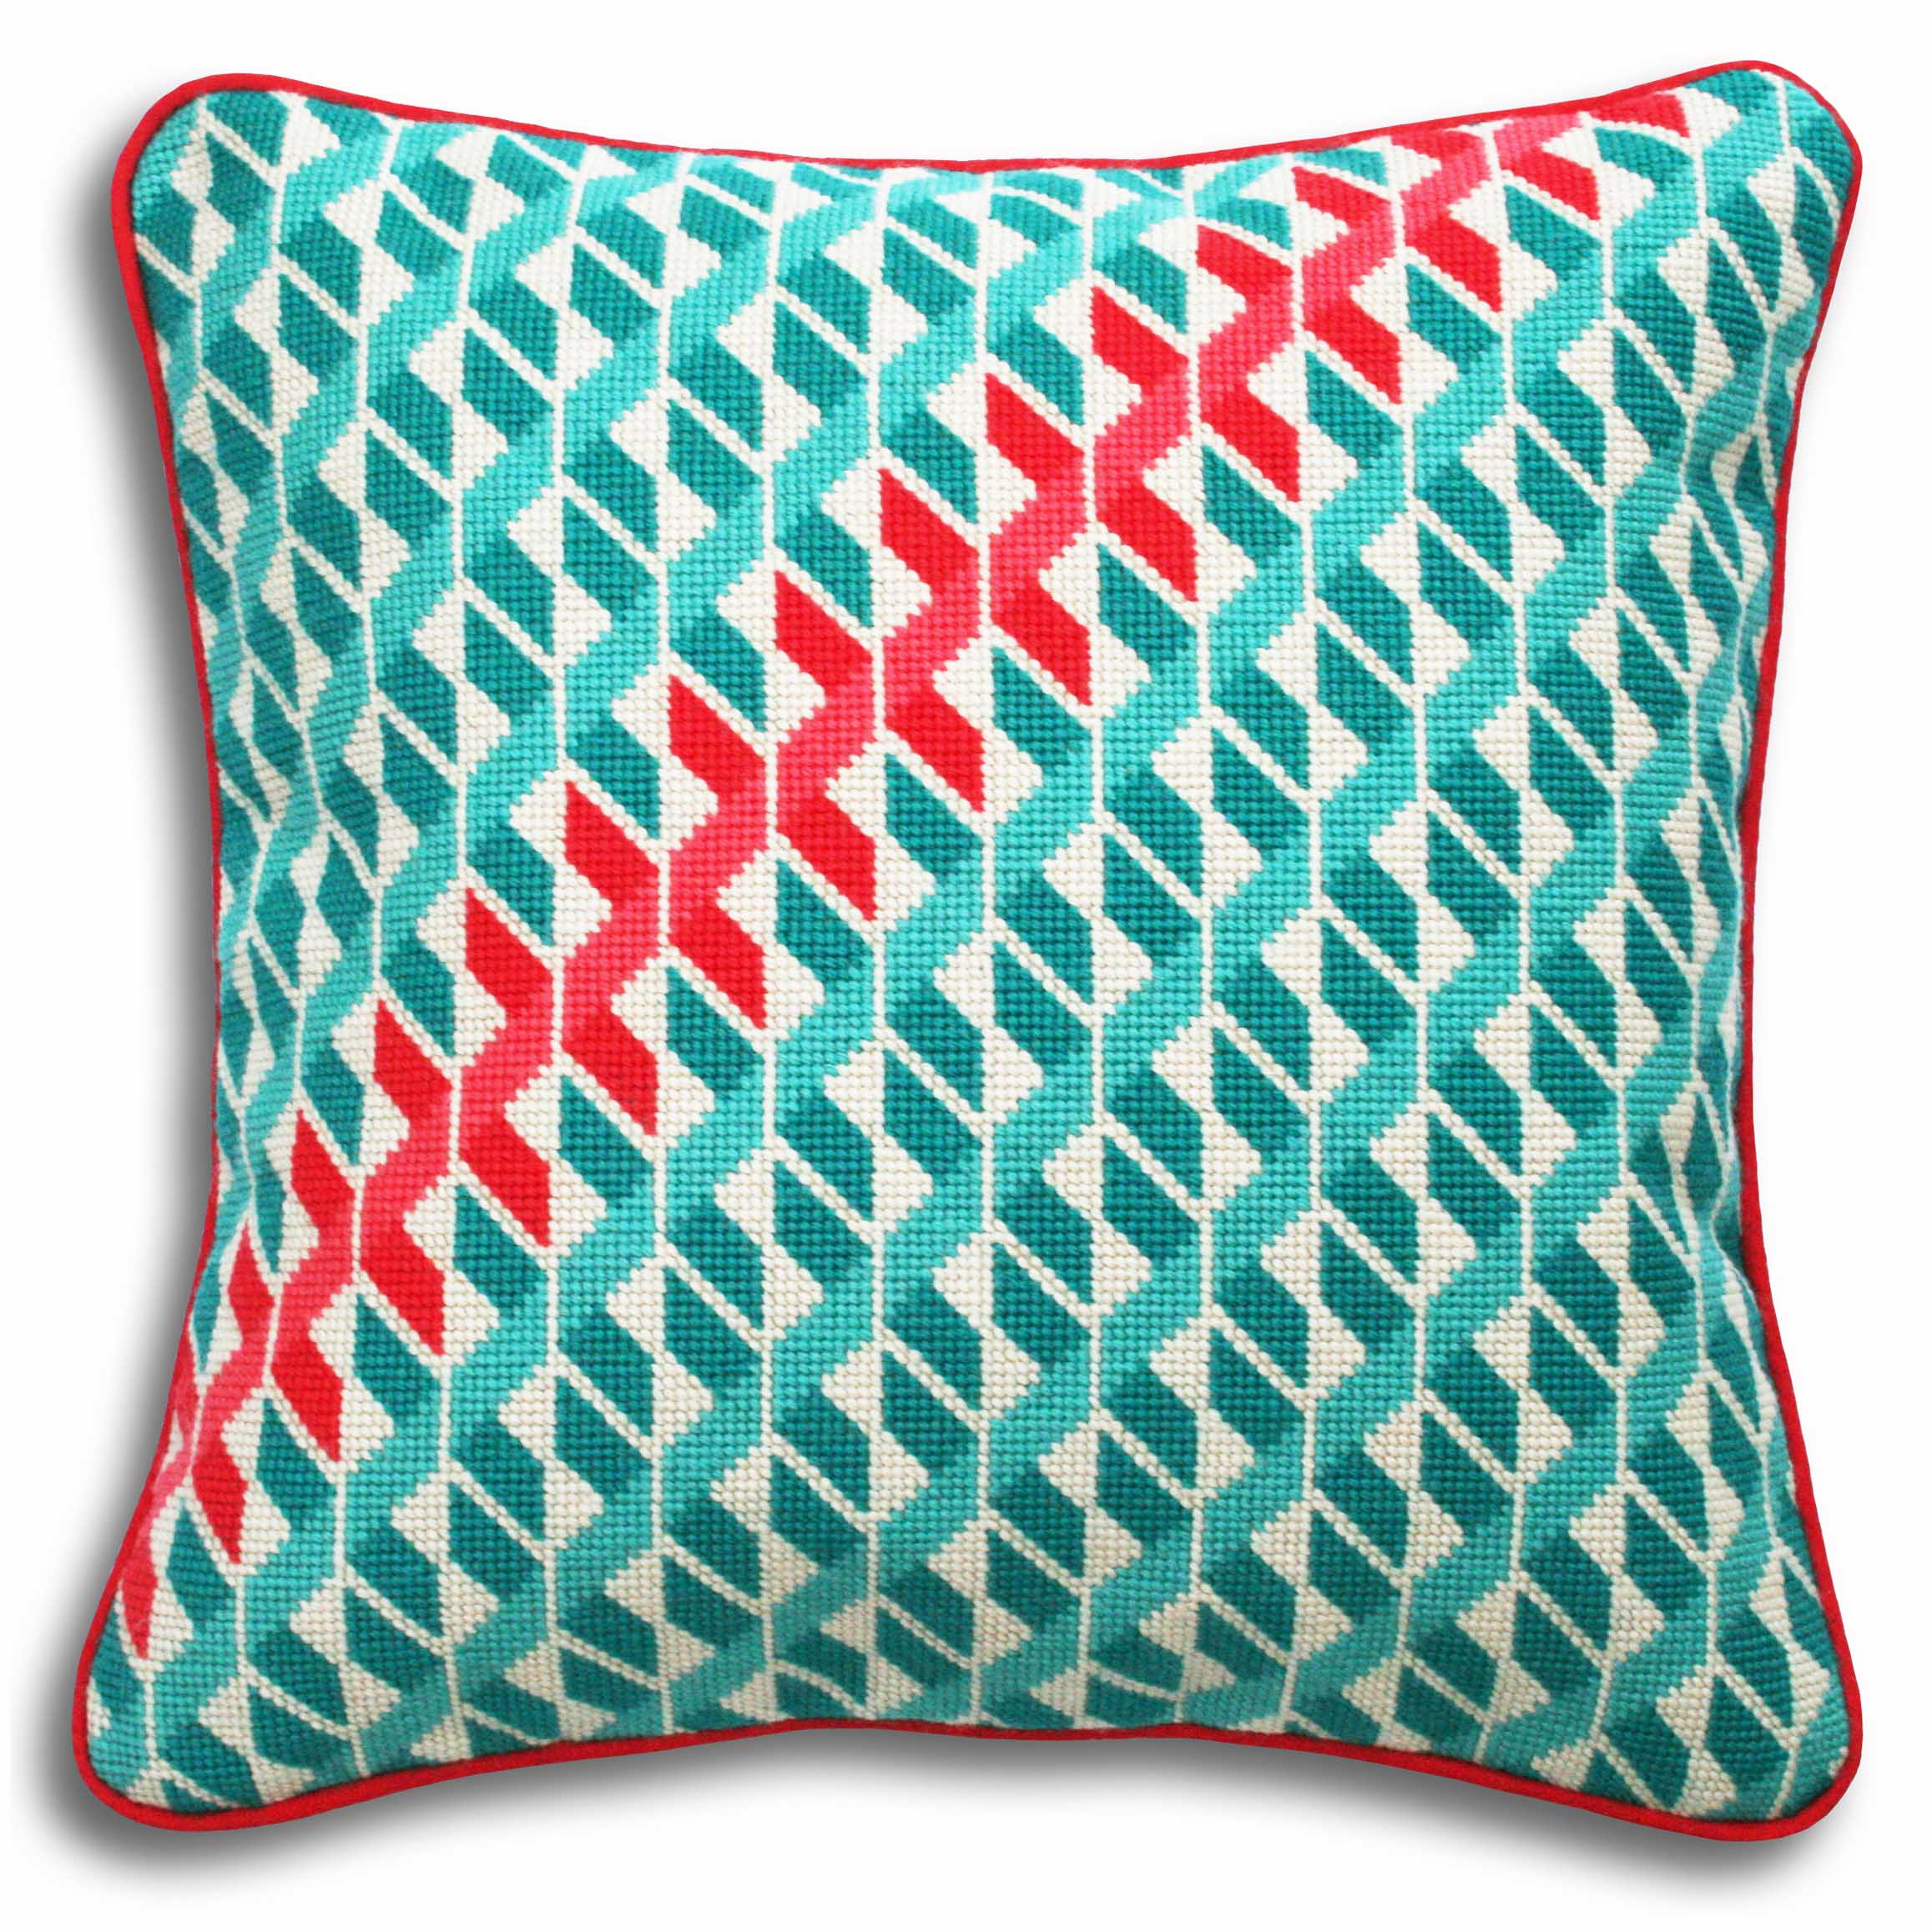 Geometric Hexagons Large kit  Turquoise and coral colourway  £52  (includes free UK postage)